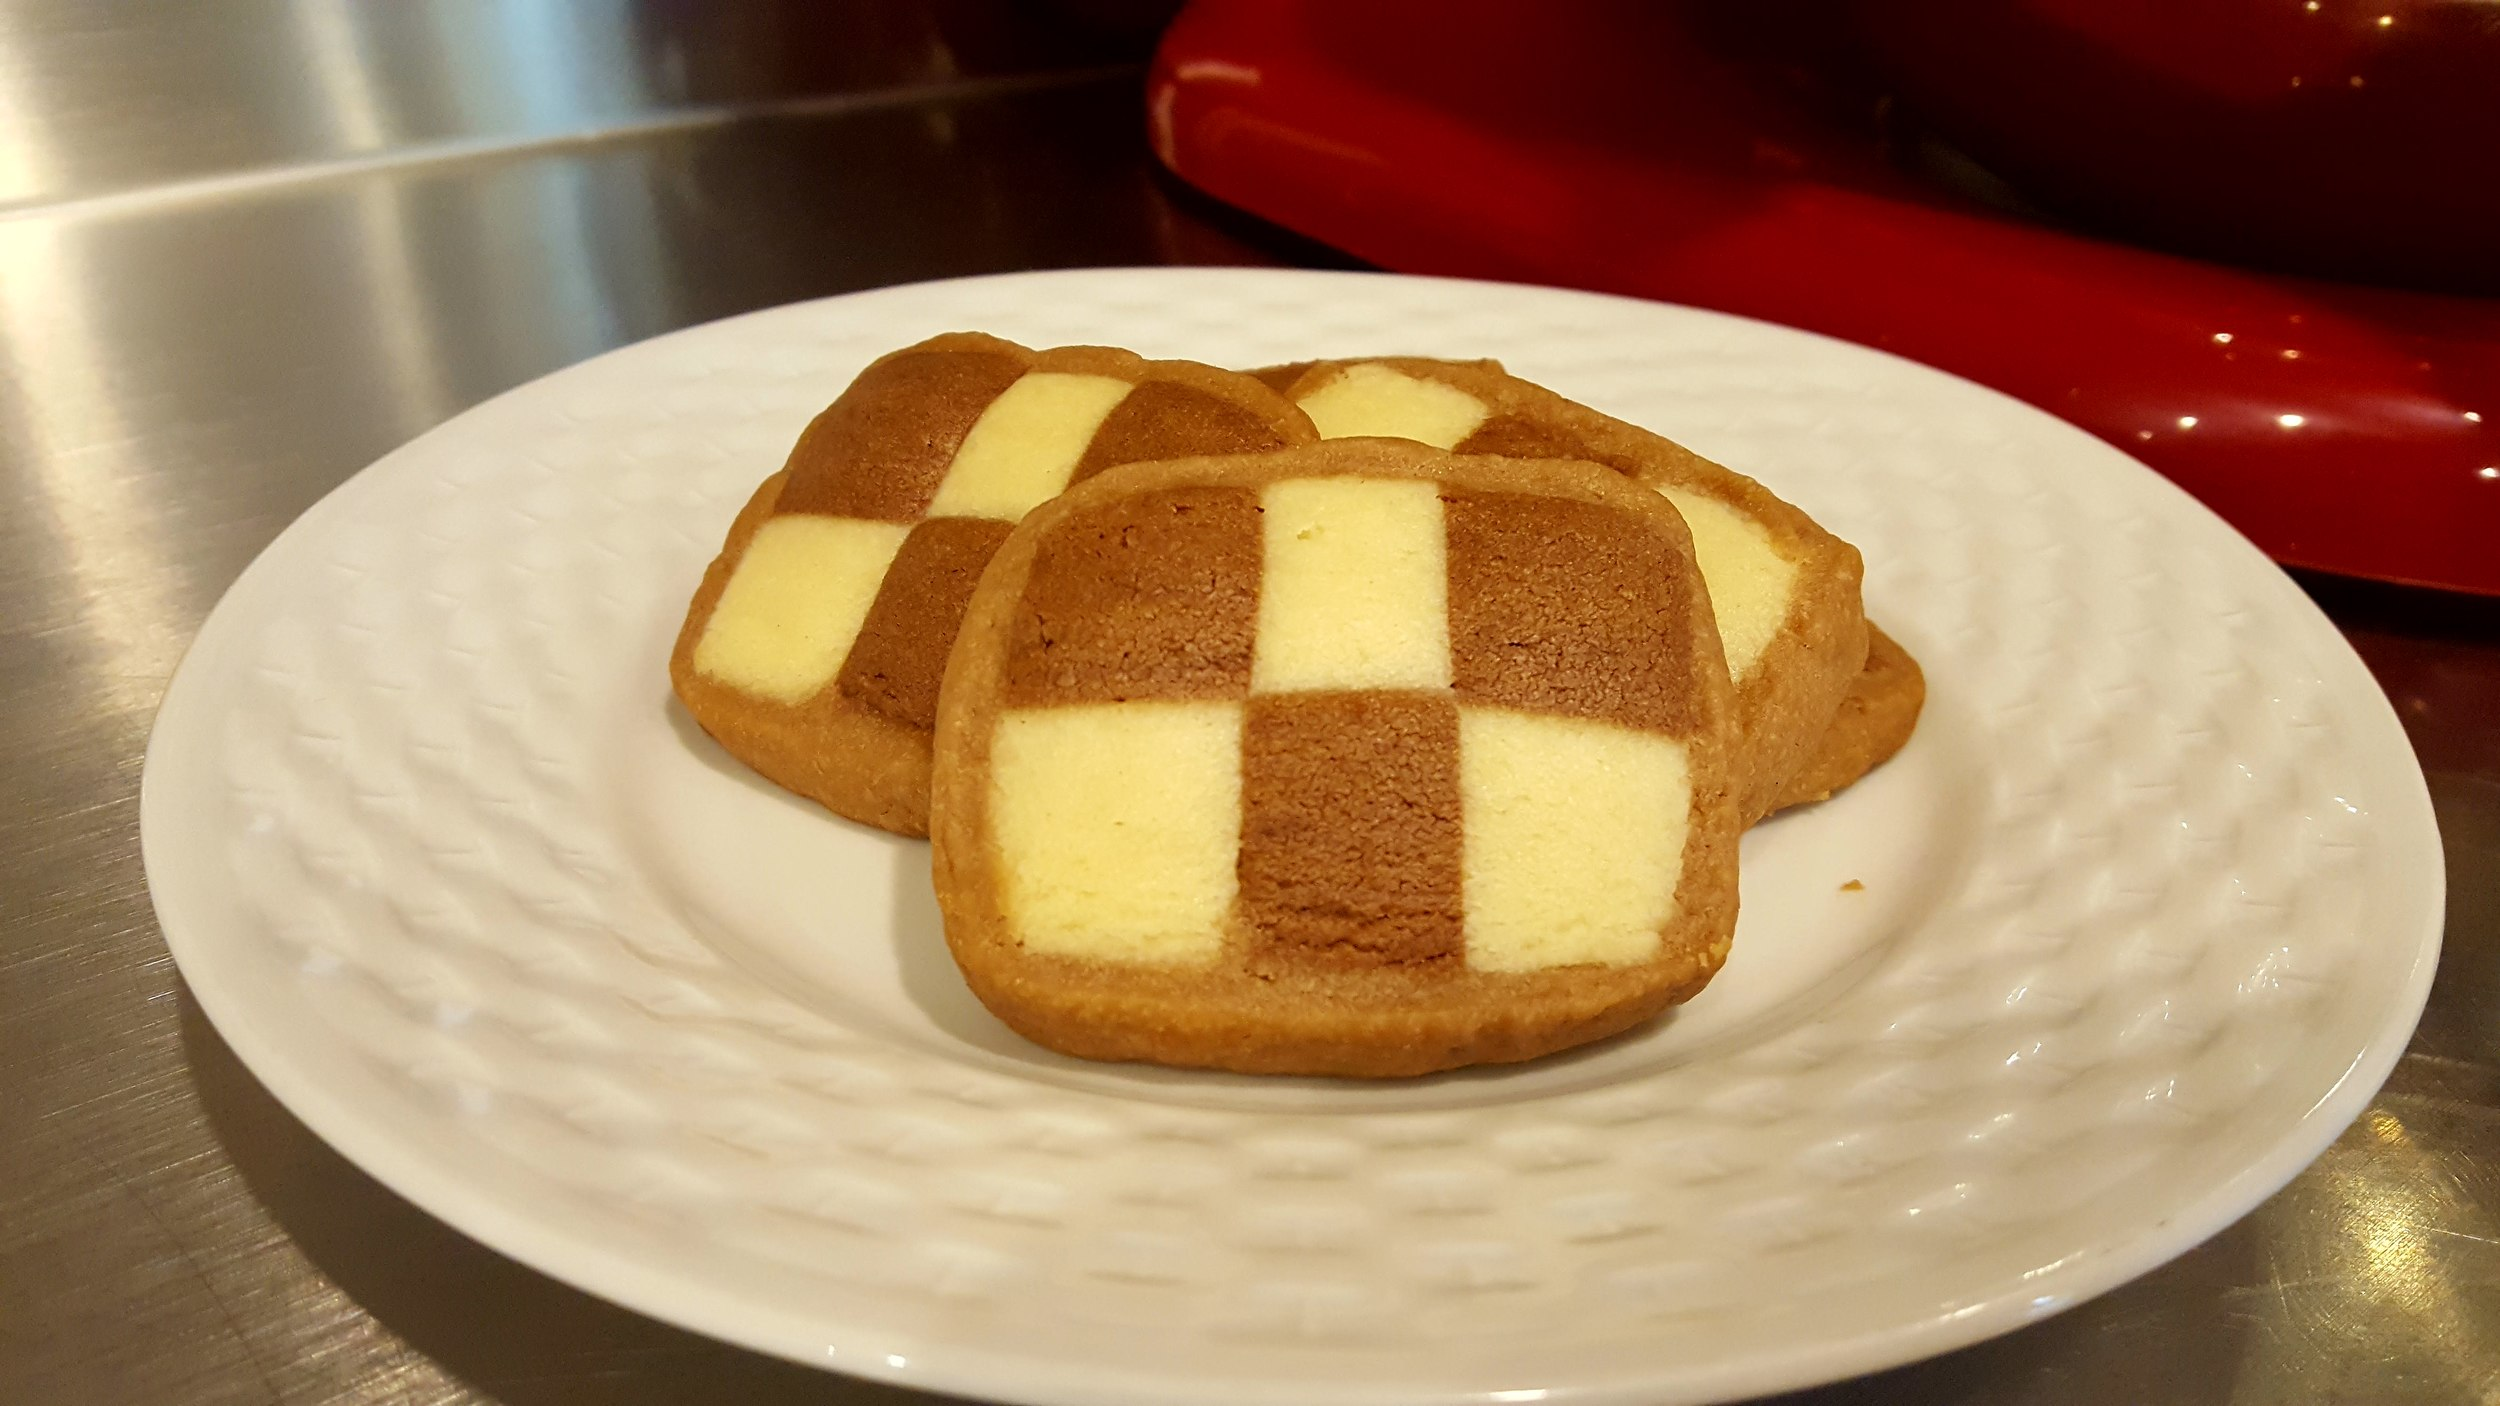 The Ultimate Cookie Challenge - Ashley's Checkerboards!